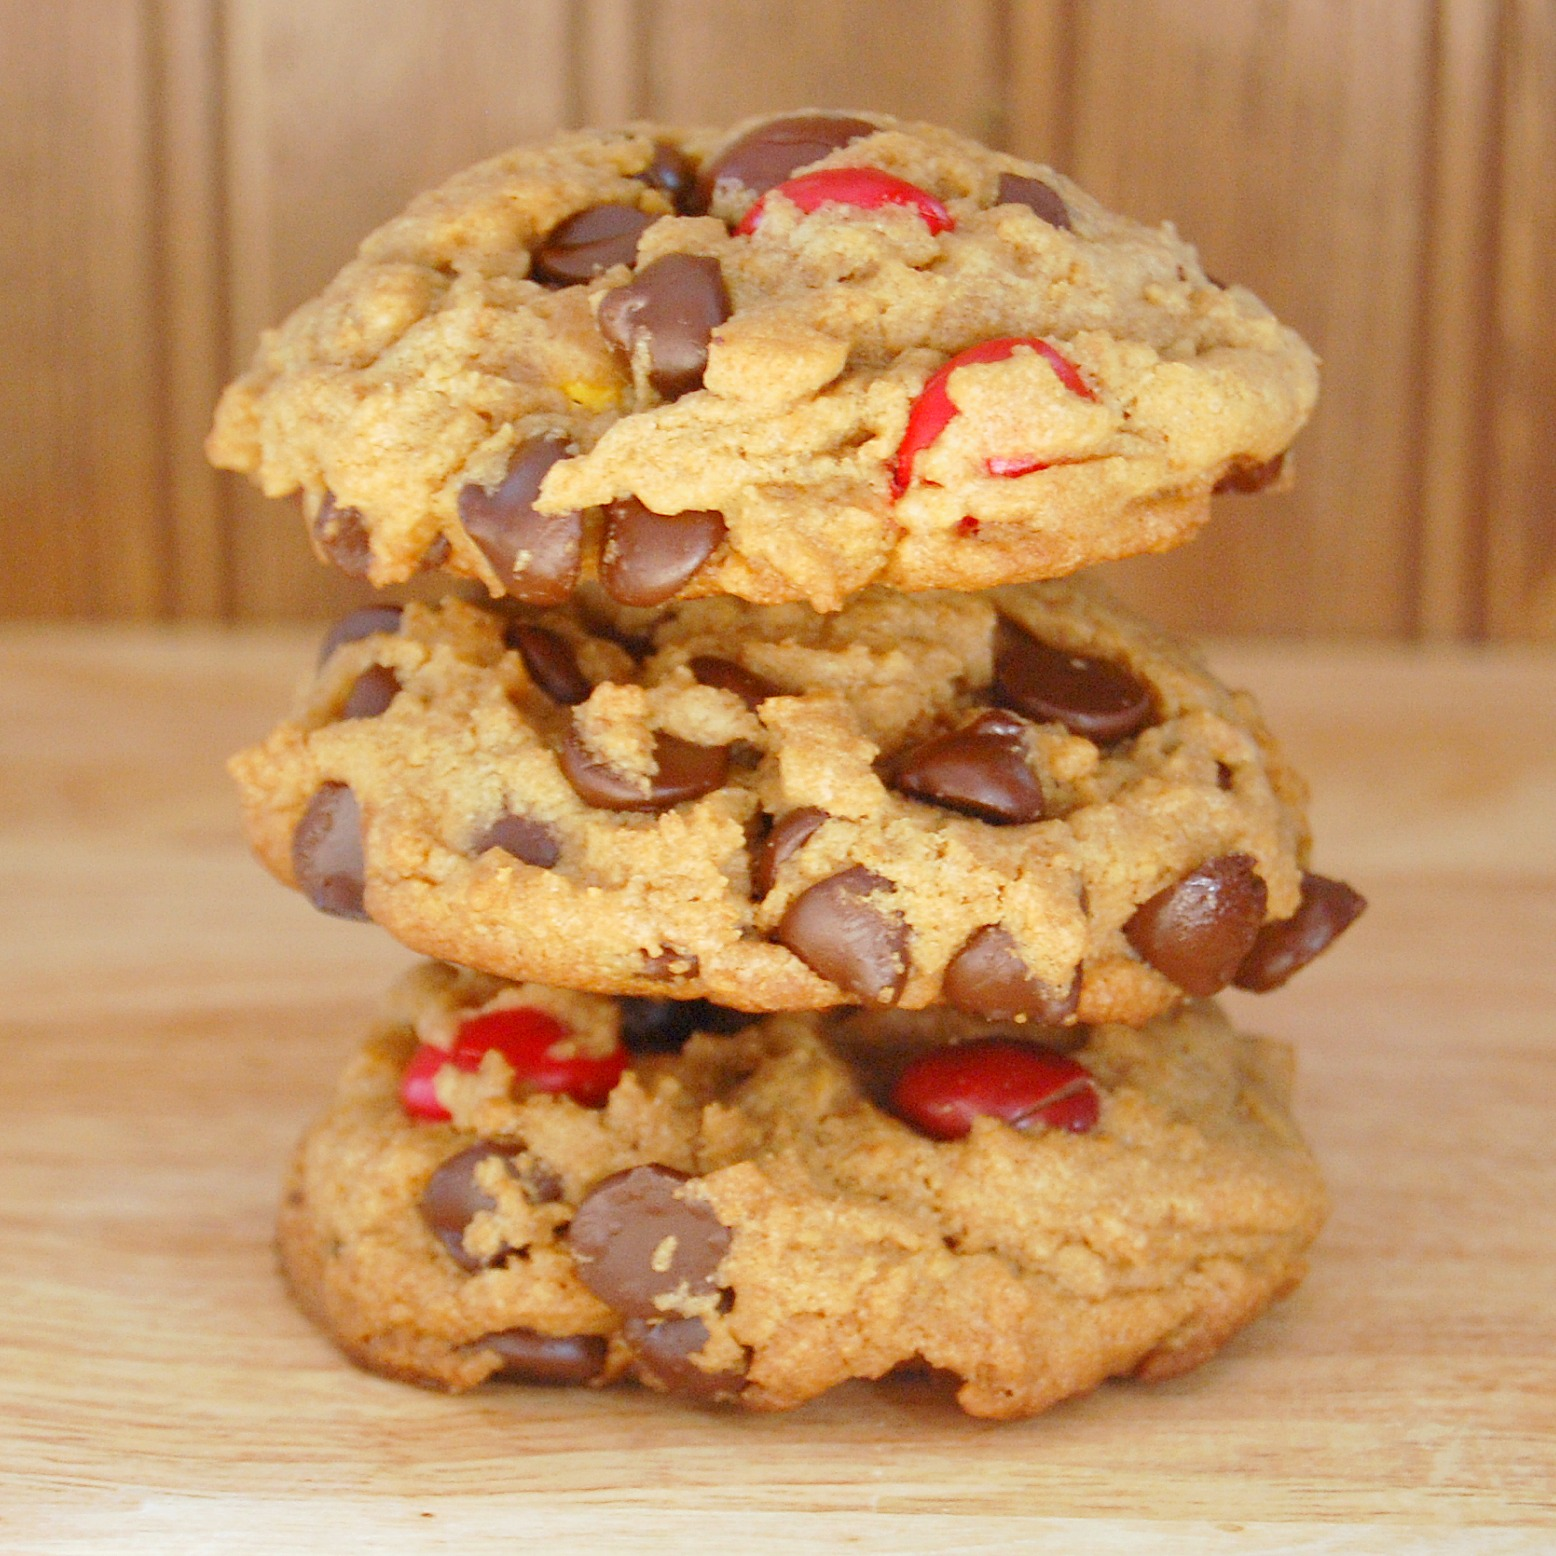 chocolate chip with reeses pieces